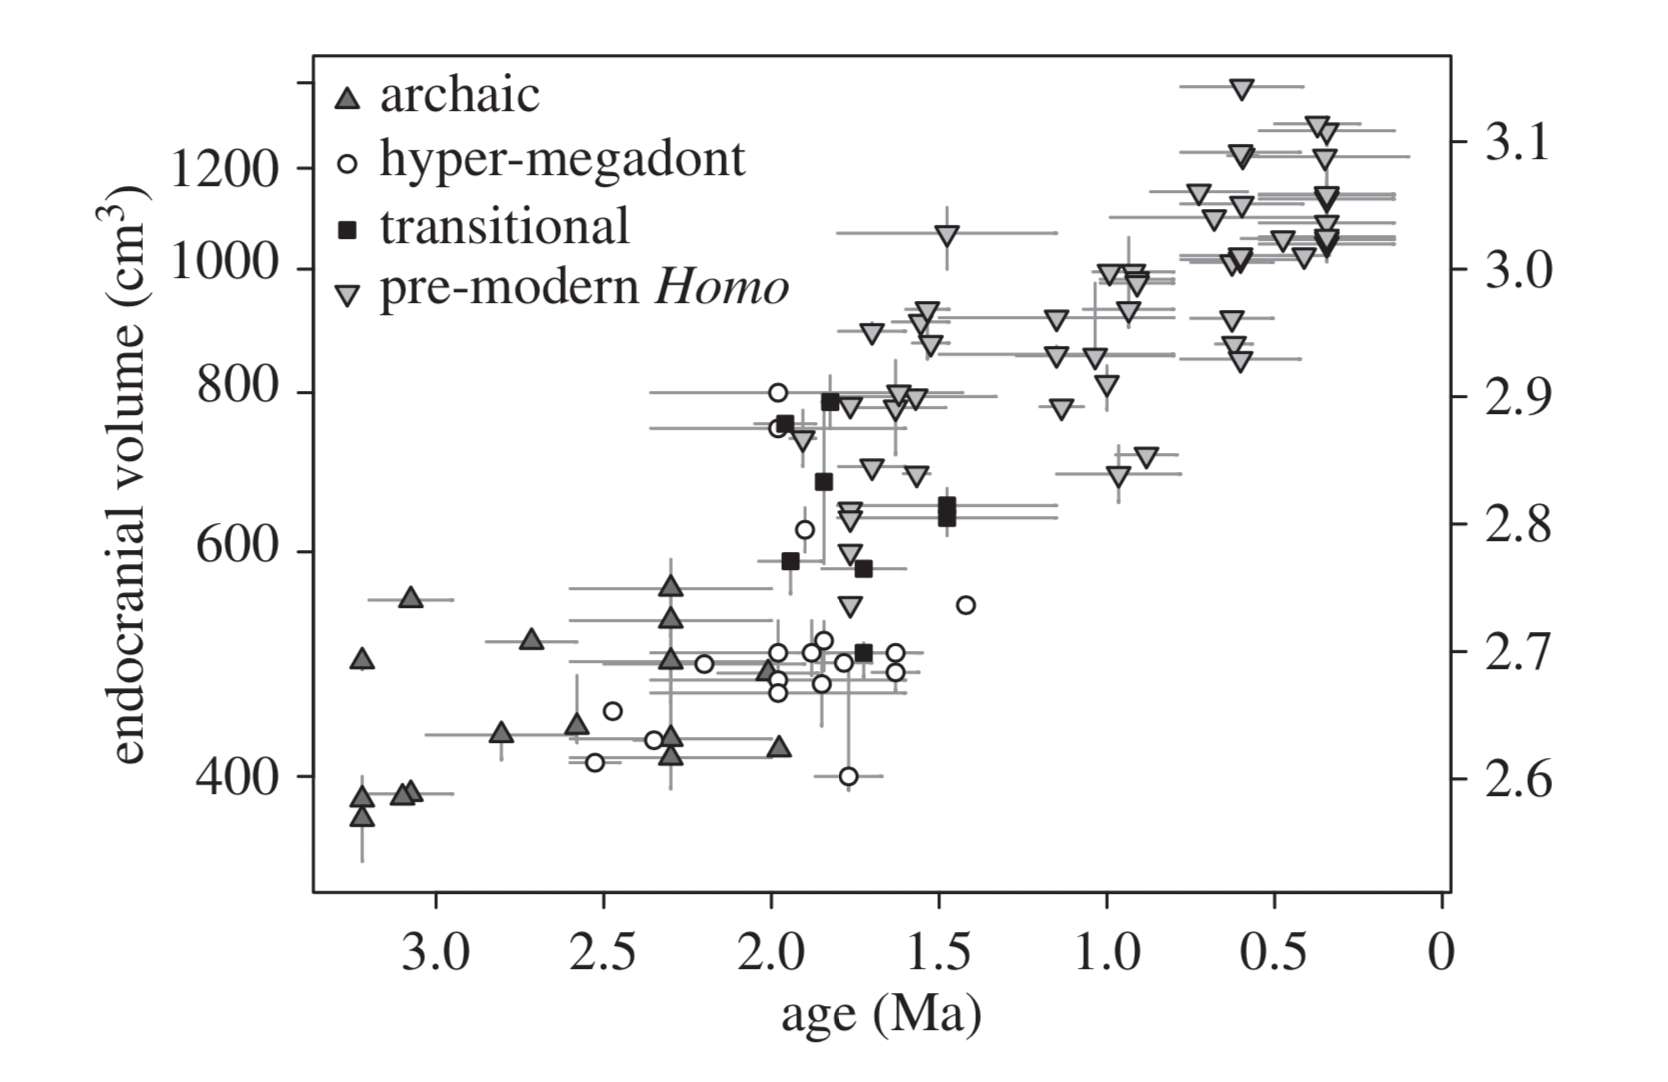 Figure 2 from Du and colleagues showing endocranial volumes of hominin fossils over time